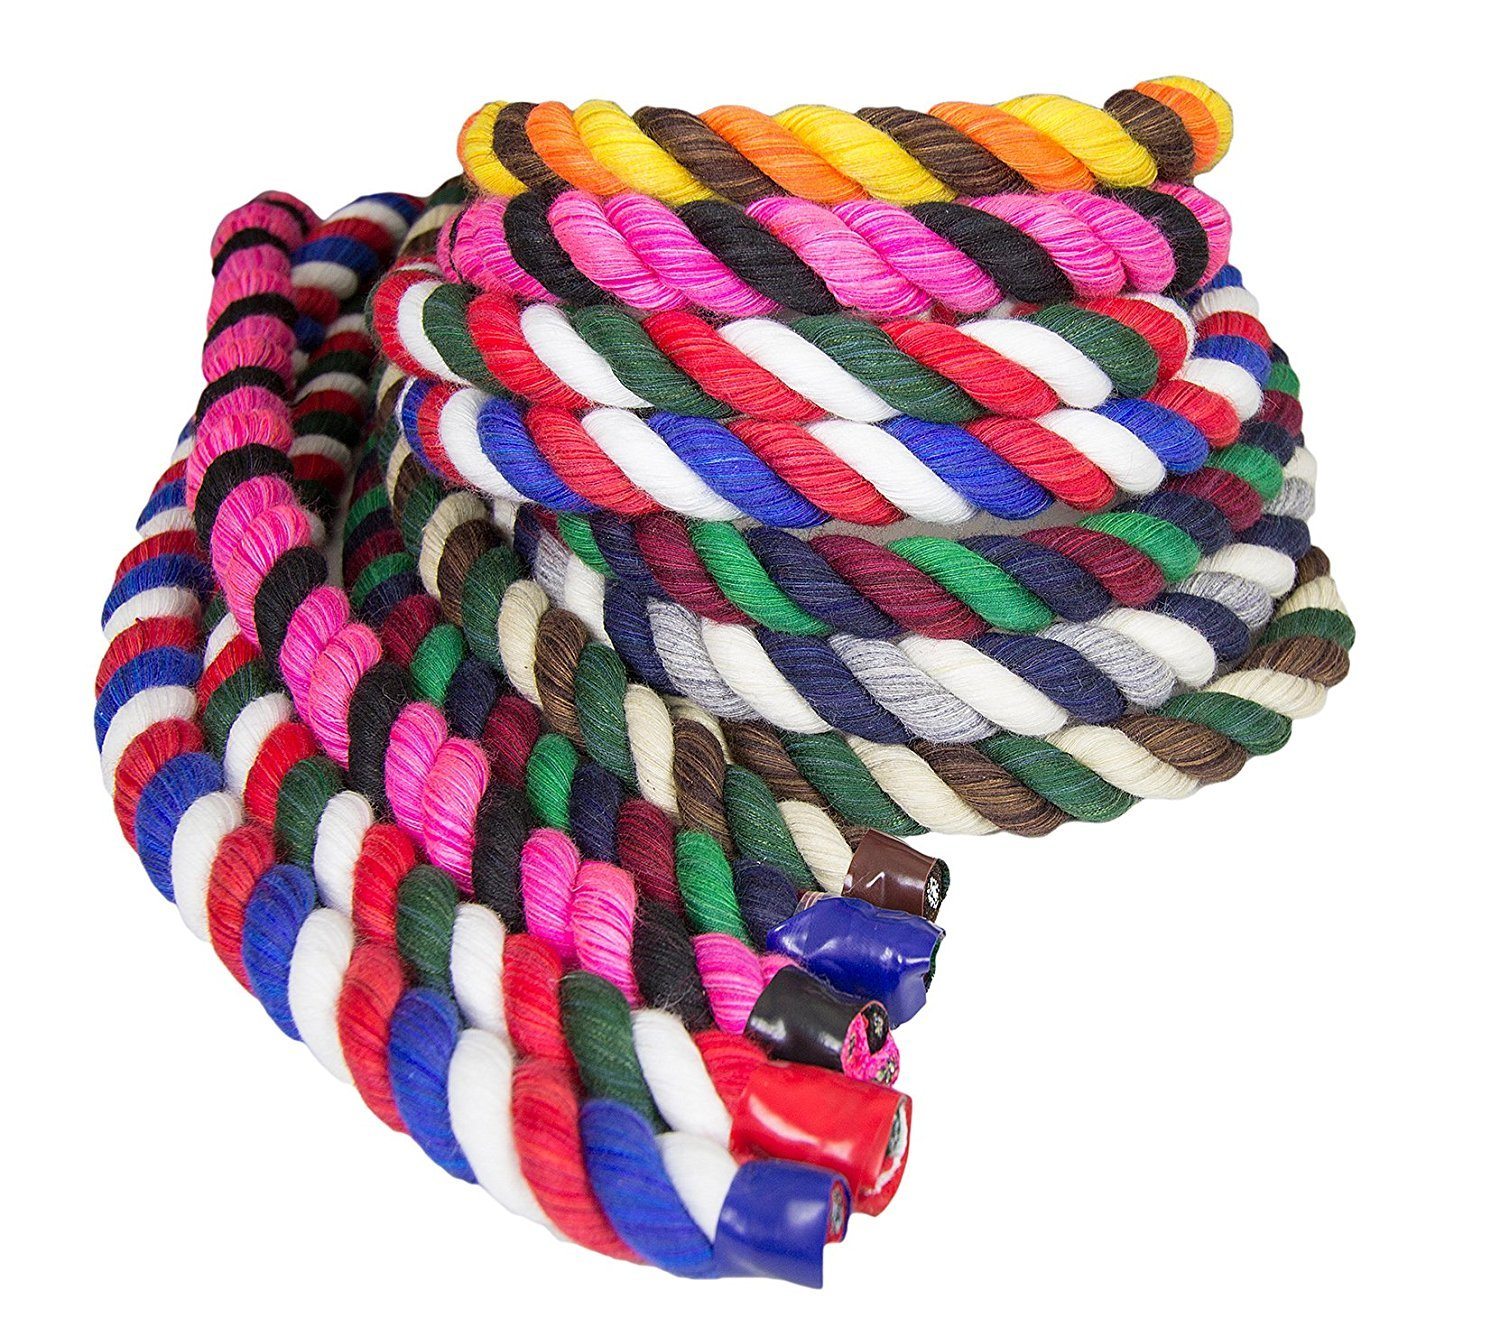 Tri-Color Natural Twisted Cotton Rope by FMS Ravenox | (Black, Black & Royal Blue)(1/2-inch x 50-feet)| Made in the USA | 3-Strand Rope by the Foot for Macramé, Décor & Design, Sports, Pet Toys, Craft by FMS